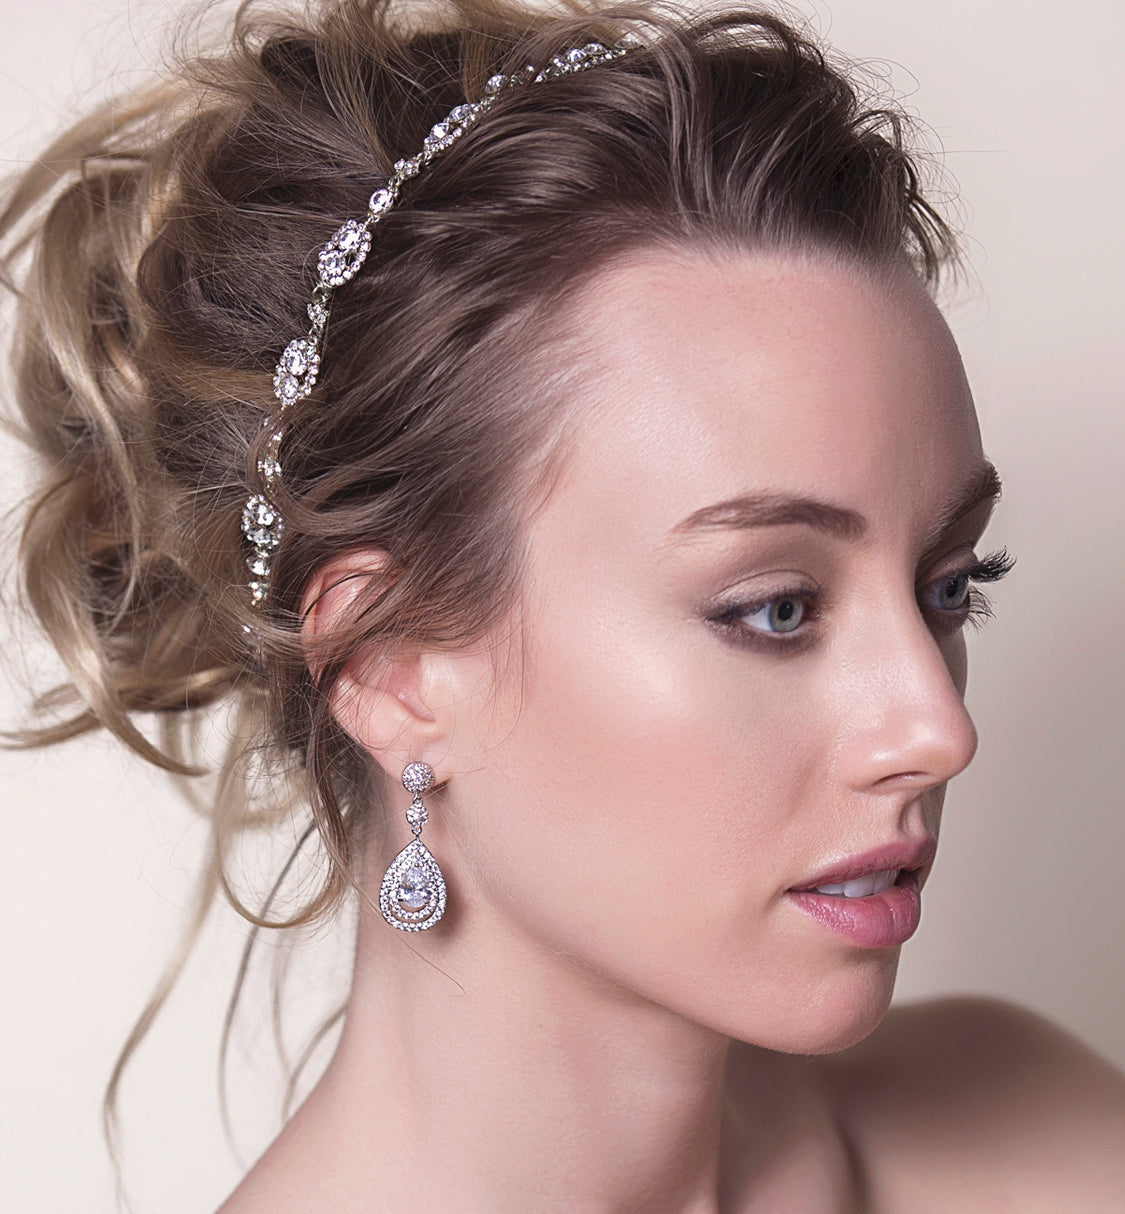 Jules Swarovski Headband with Ribbon Tie - Amy O. Bridal